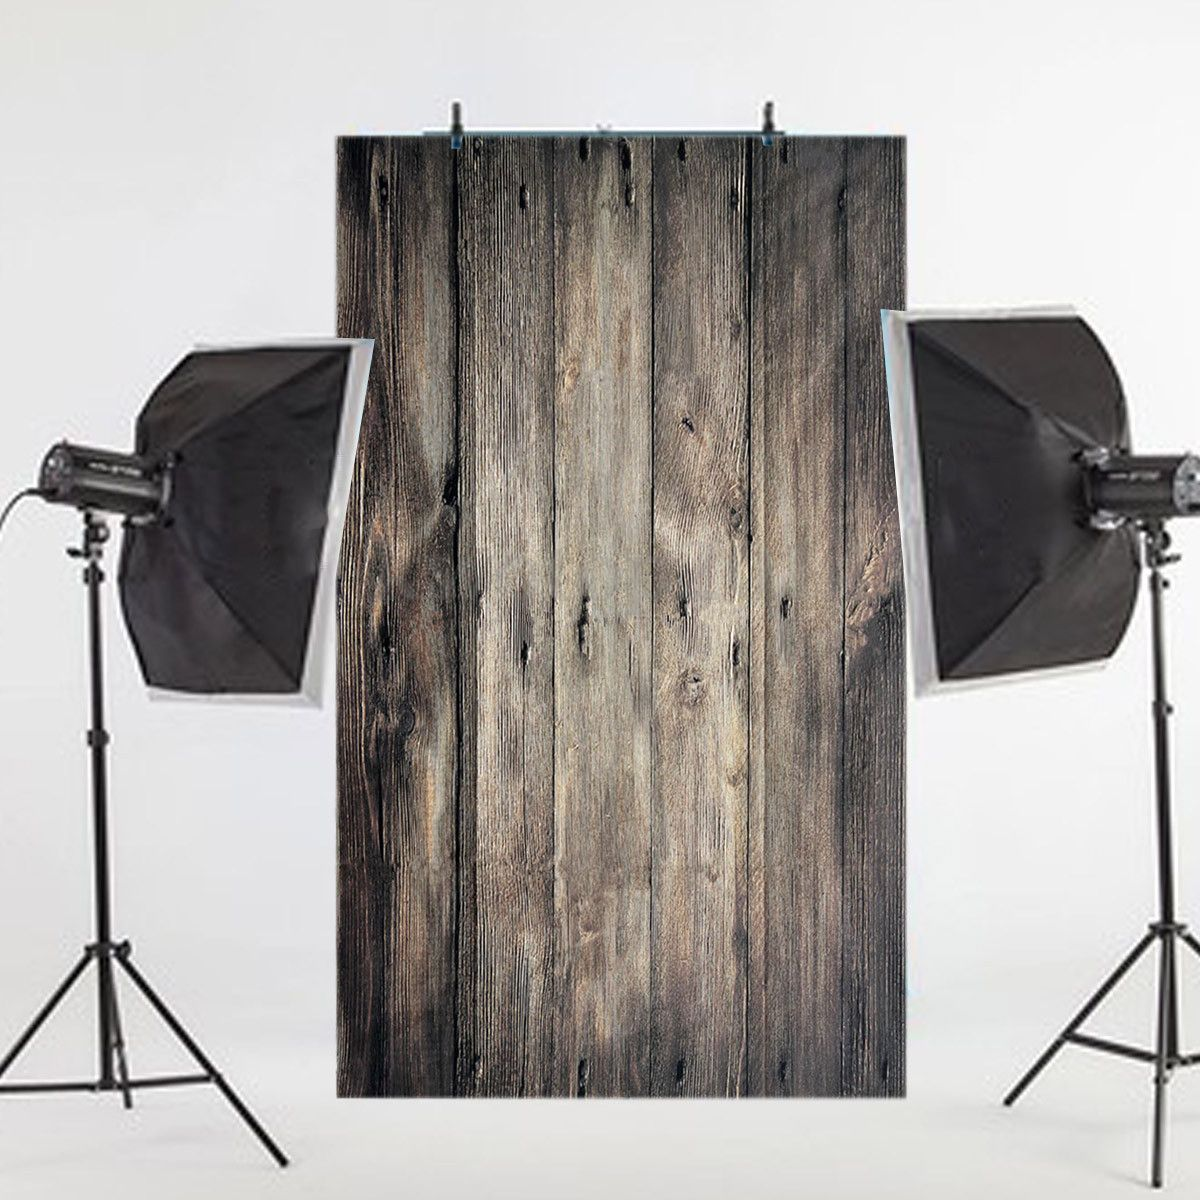 New 3x5FT Vintage Photography Backdrops Wood Vintage Photography Backdrop Backgrounds Studio Wood Background Fotografia сунь цзы сунь цзы искусство войны илл